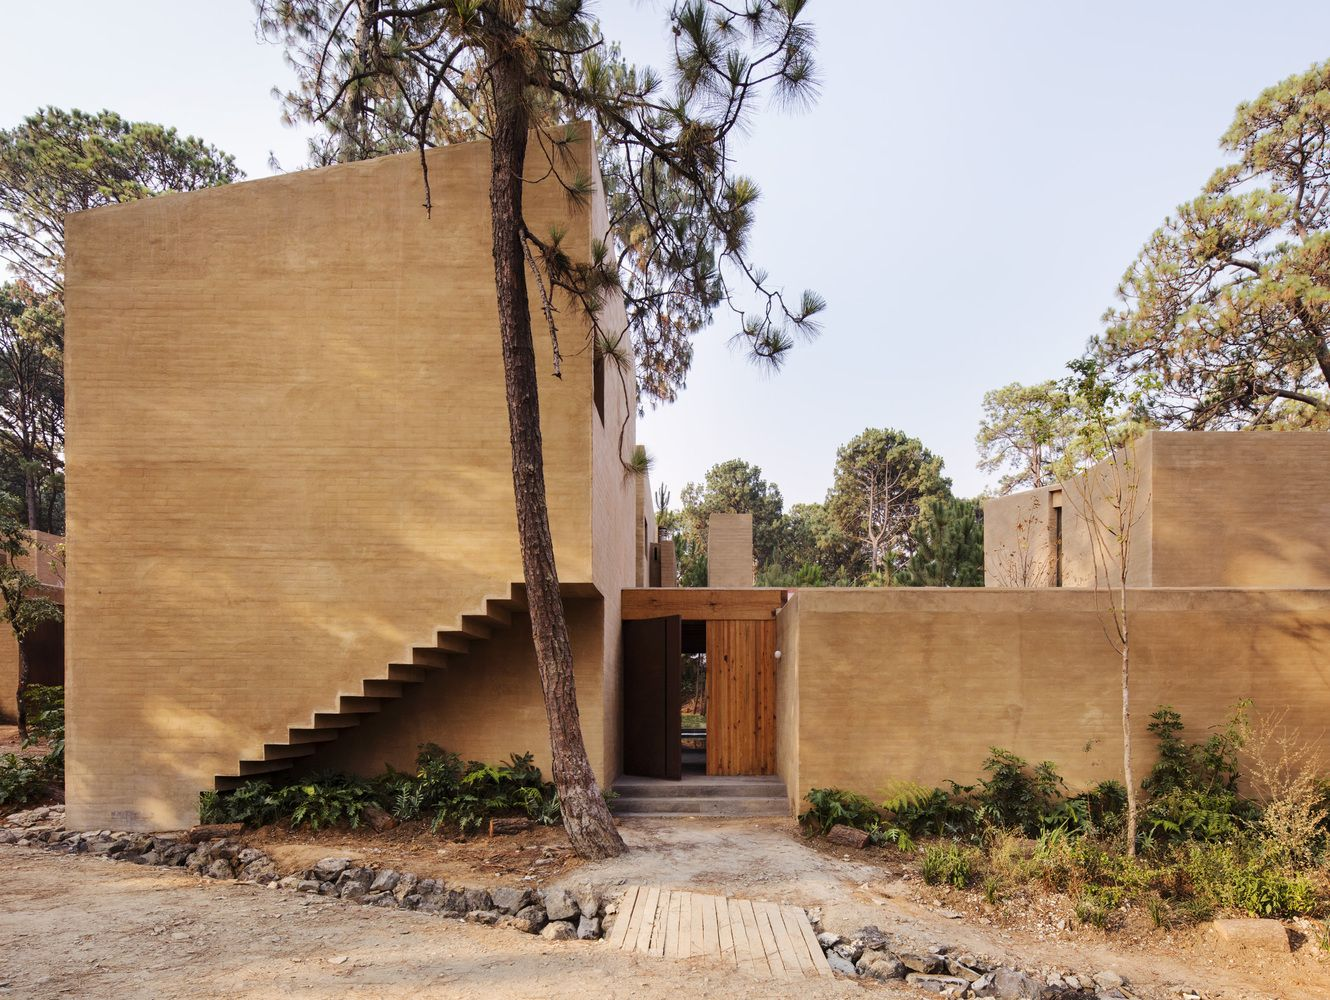 Gallery Of Entrepinos Housing Taller Hector Barroso 19 Architecture Weekend House Modern House Design